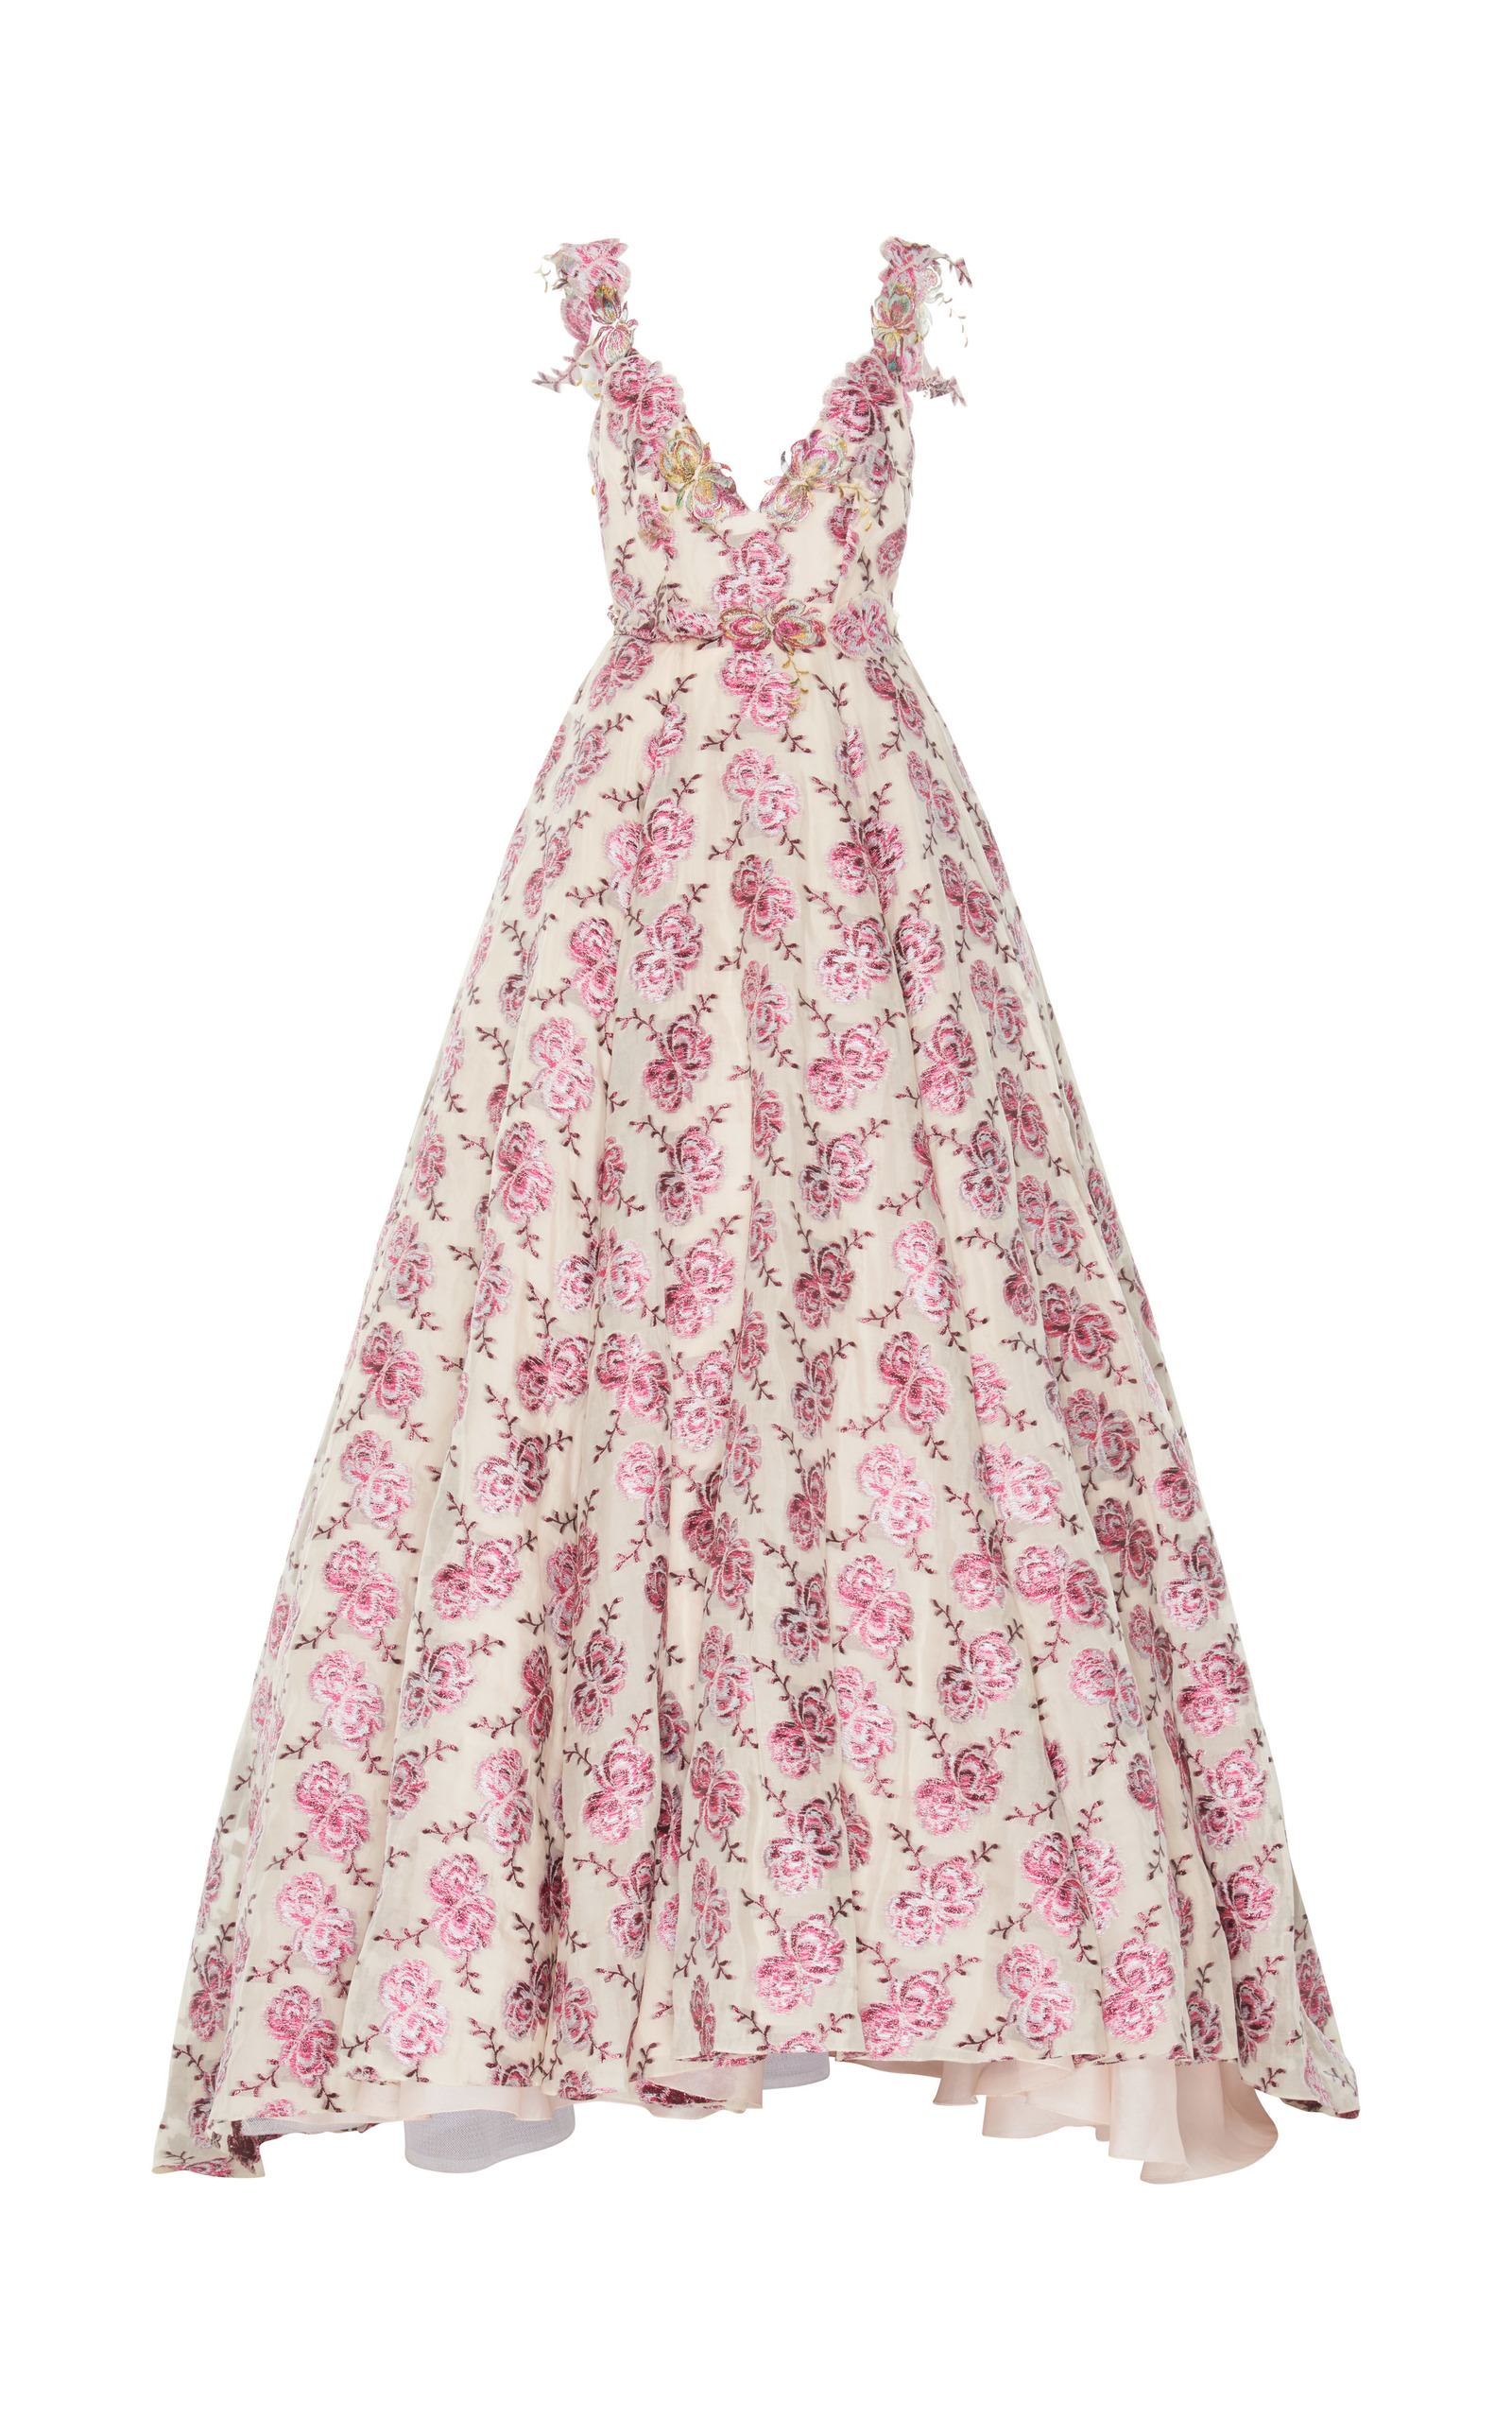 1073a299c8 Floral Embroidered Ball Gown by Luisa Beccaria   Moda Operandi